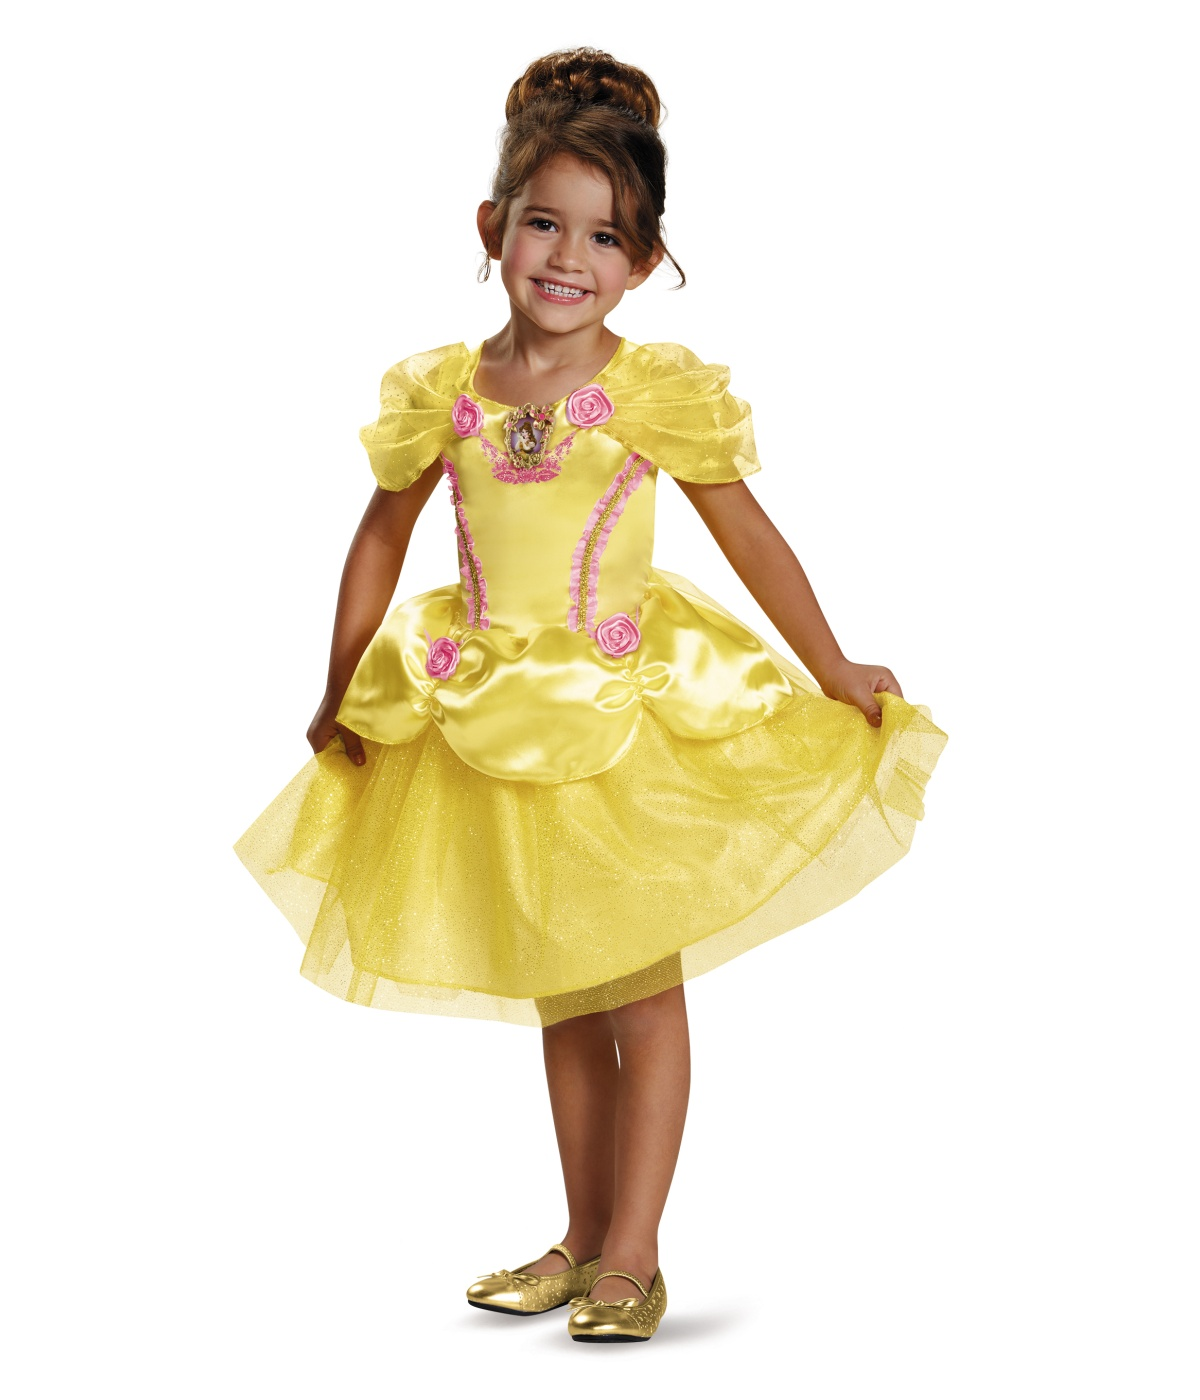 Princess Costumes - Fairy Tale Princess Dresses & Gowns